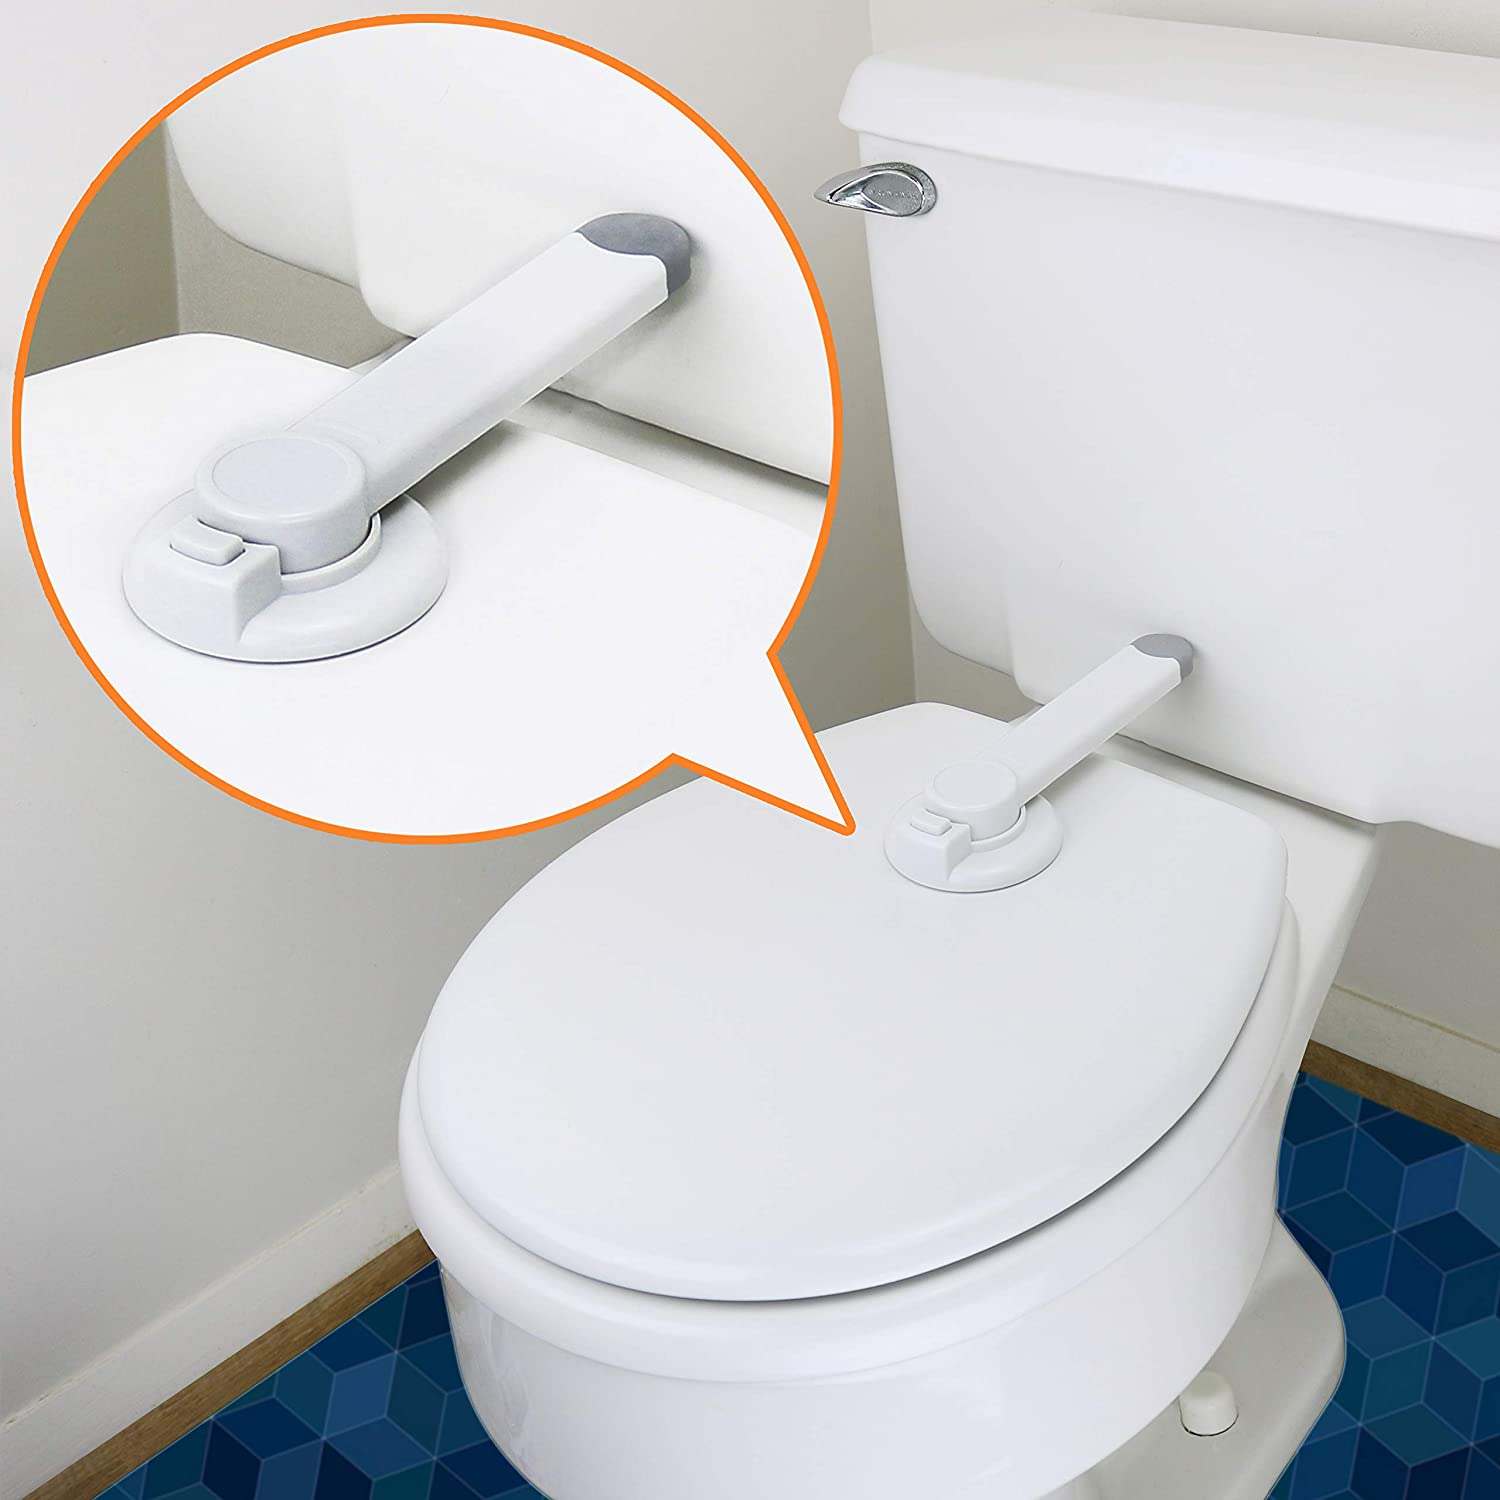 Toilet Lock Child Safety - Ideal Baby Proof Toilet Seat Lock with 3M Adhesive | Easy Installation, No Tools Needed | Fits Most Toilet Seats - White (1 Pack)